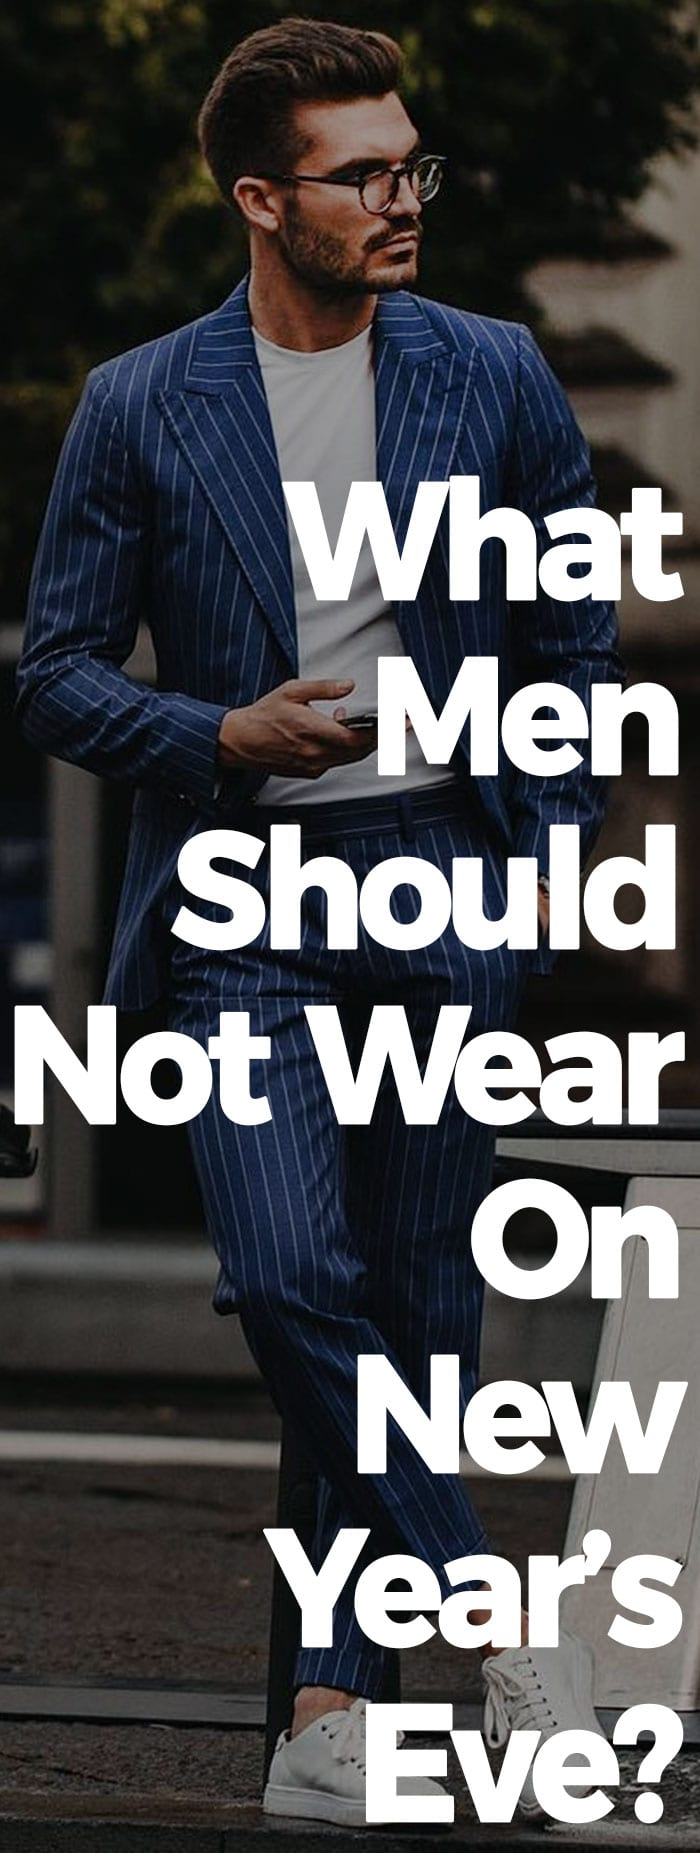 What Men Should Not Wear On New Year's Eve